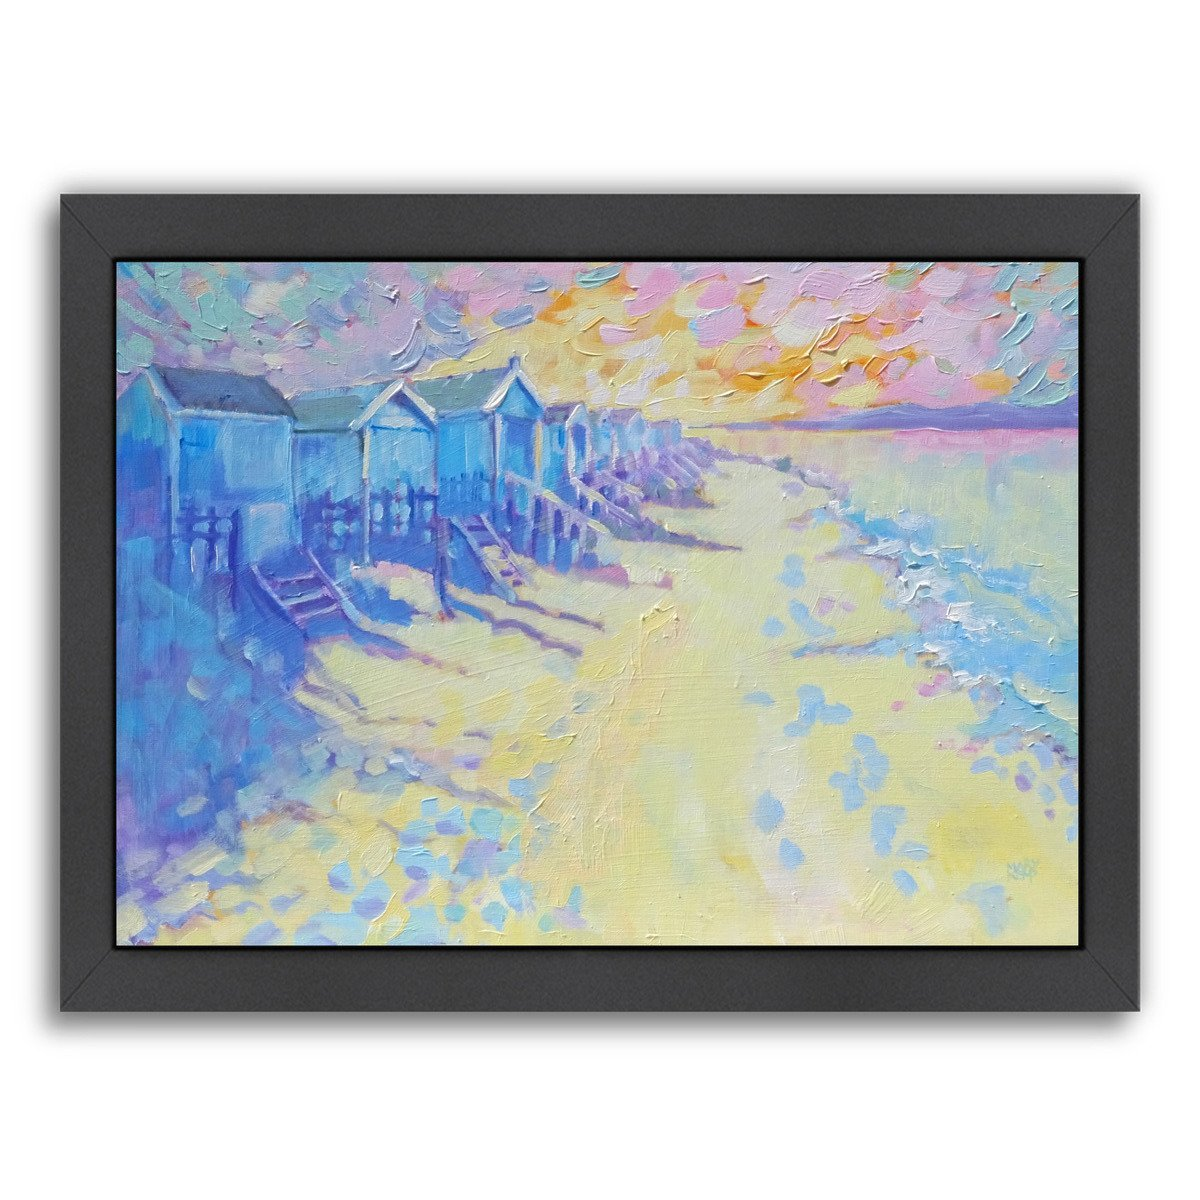 Beach Huts By Mary Kemp - Black Framed Print - Wall Art - Americanflat